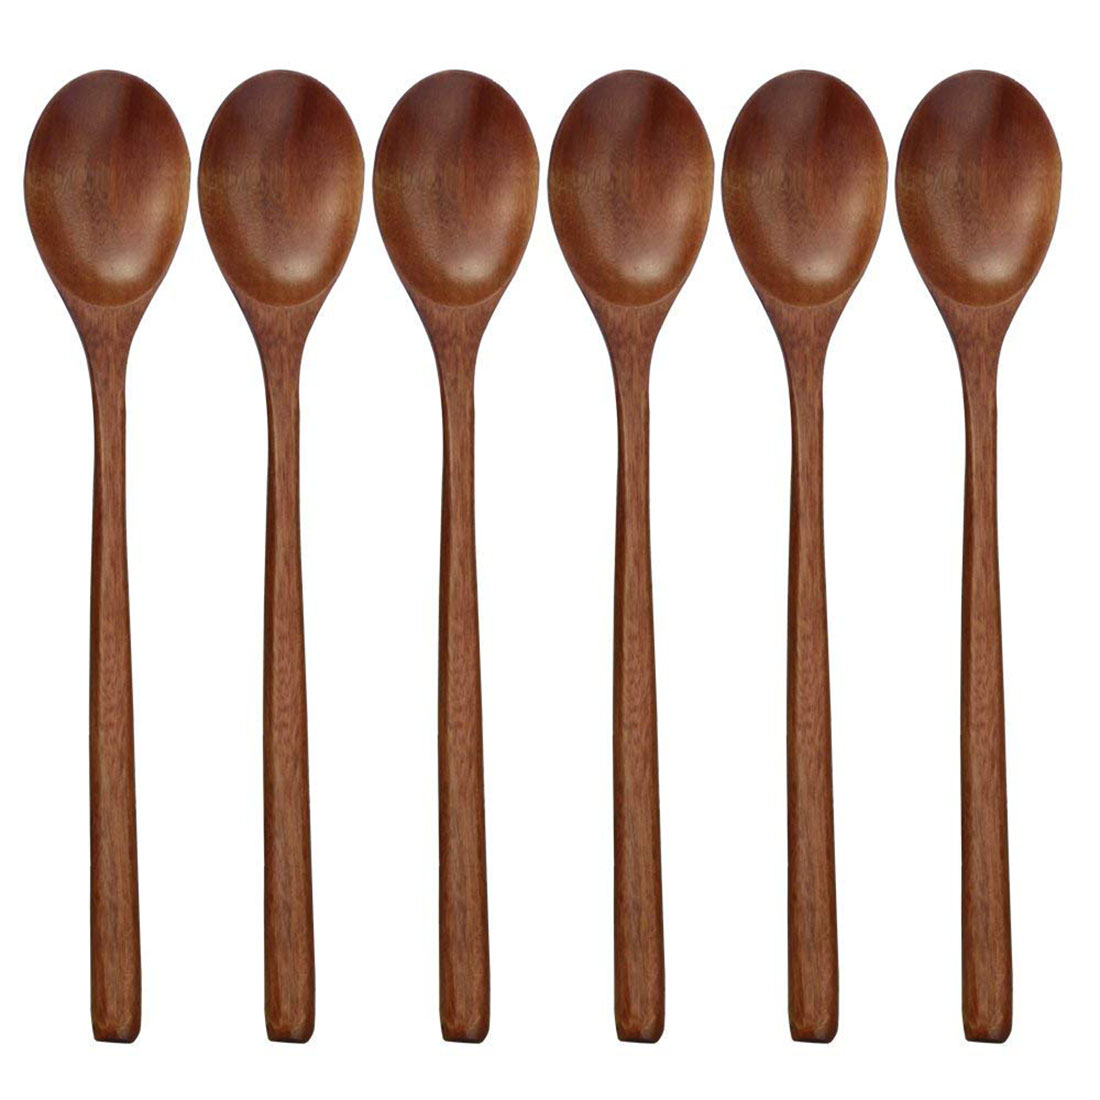 Wooden Spoons, 6 Pieces Wood Soup Spoons for Eating Mixing ...